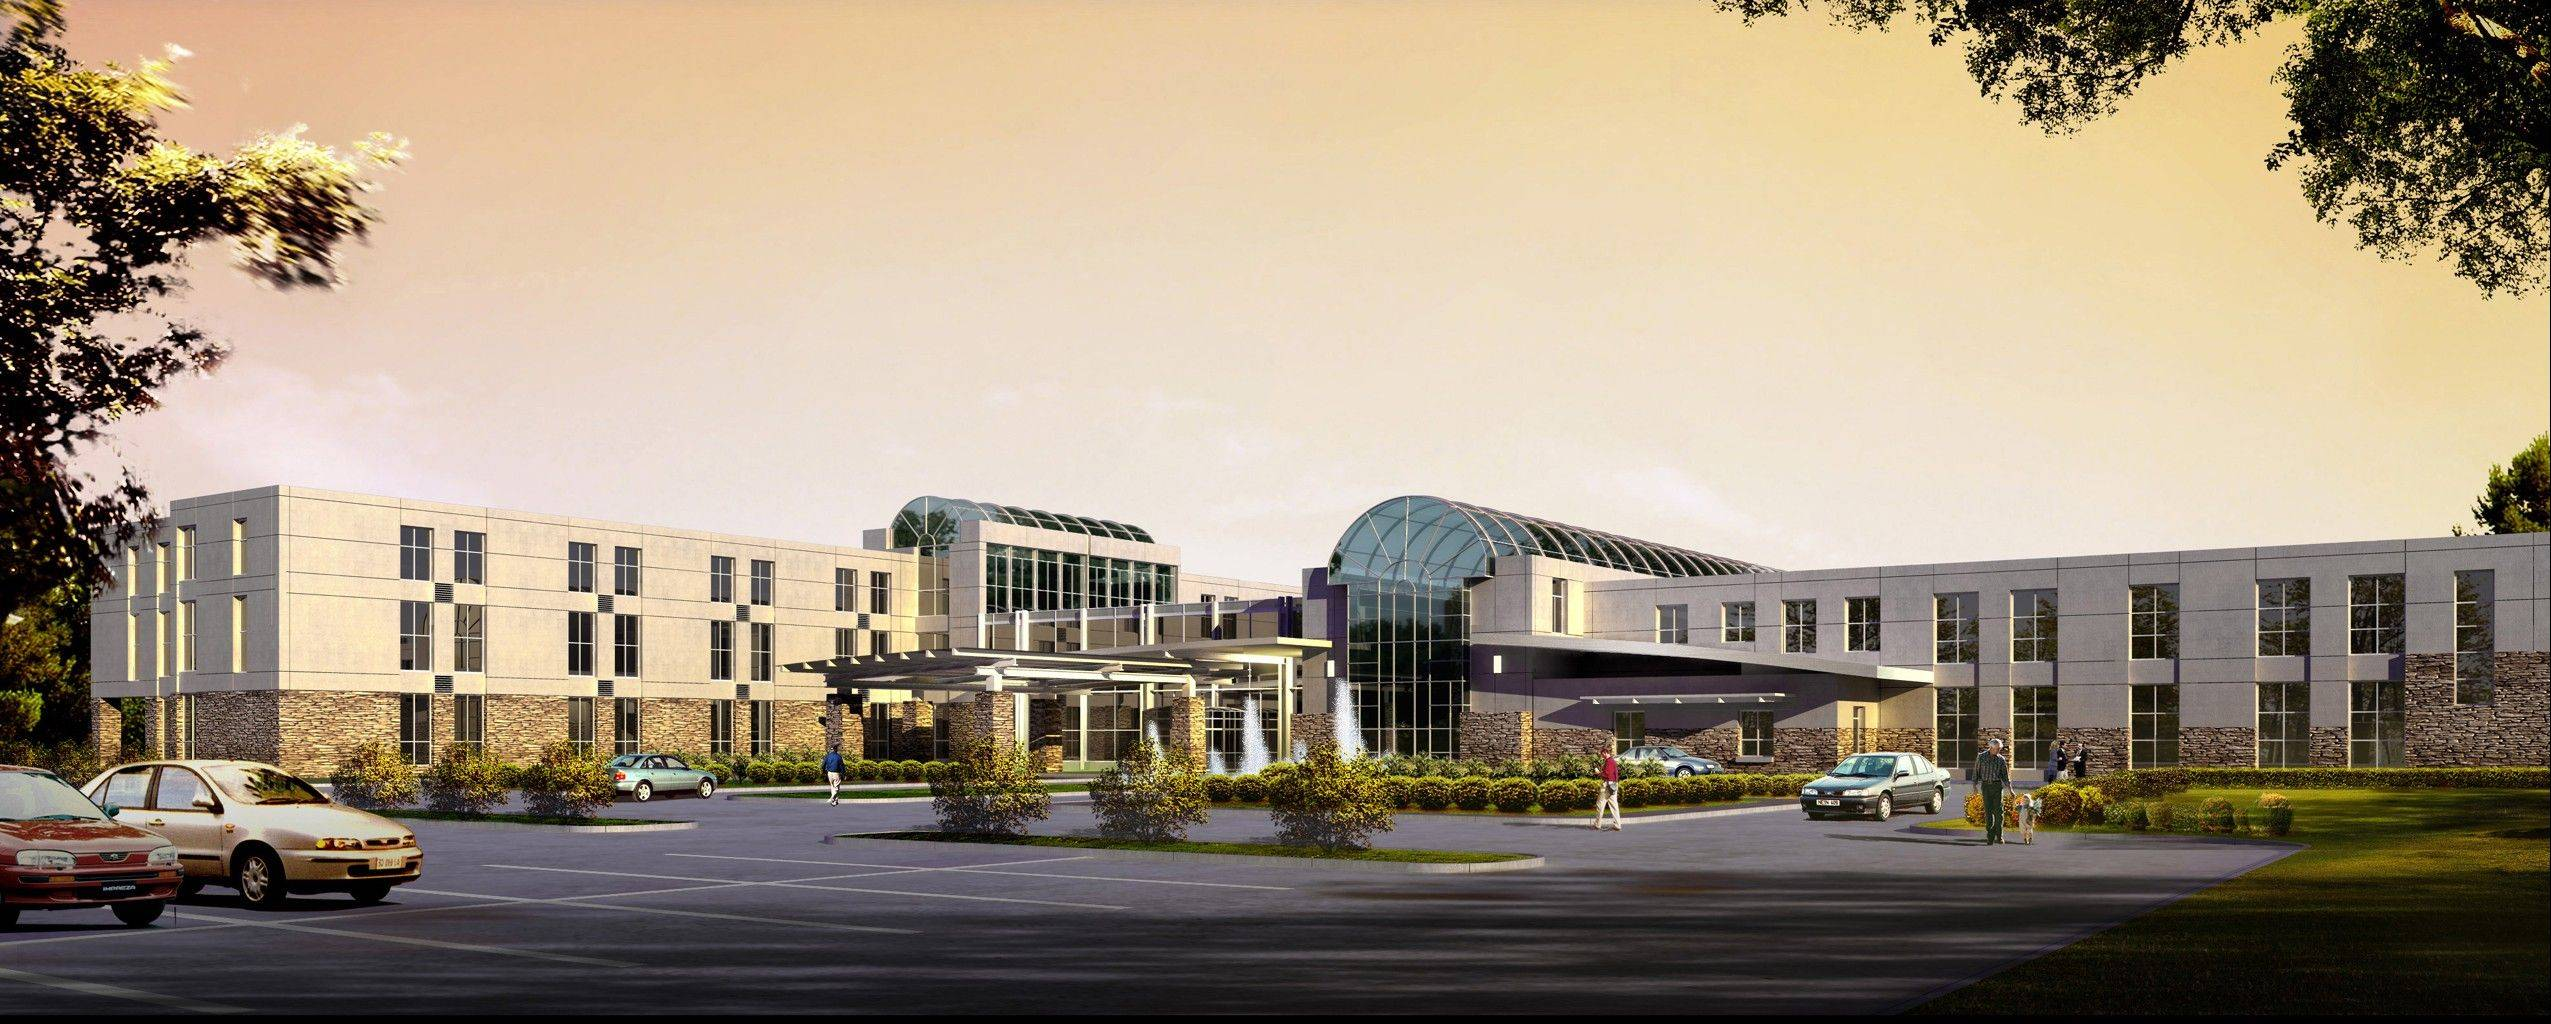 A rendering of a 70-bed hospital Mercy Health System hopes to build in Crystal Lake. Mercy previously wanted to construct a 128-bed facility, but the state rejected that plan in June.